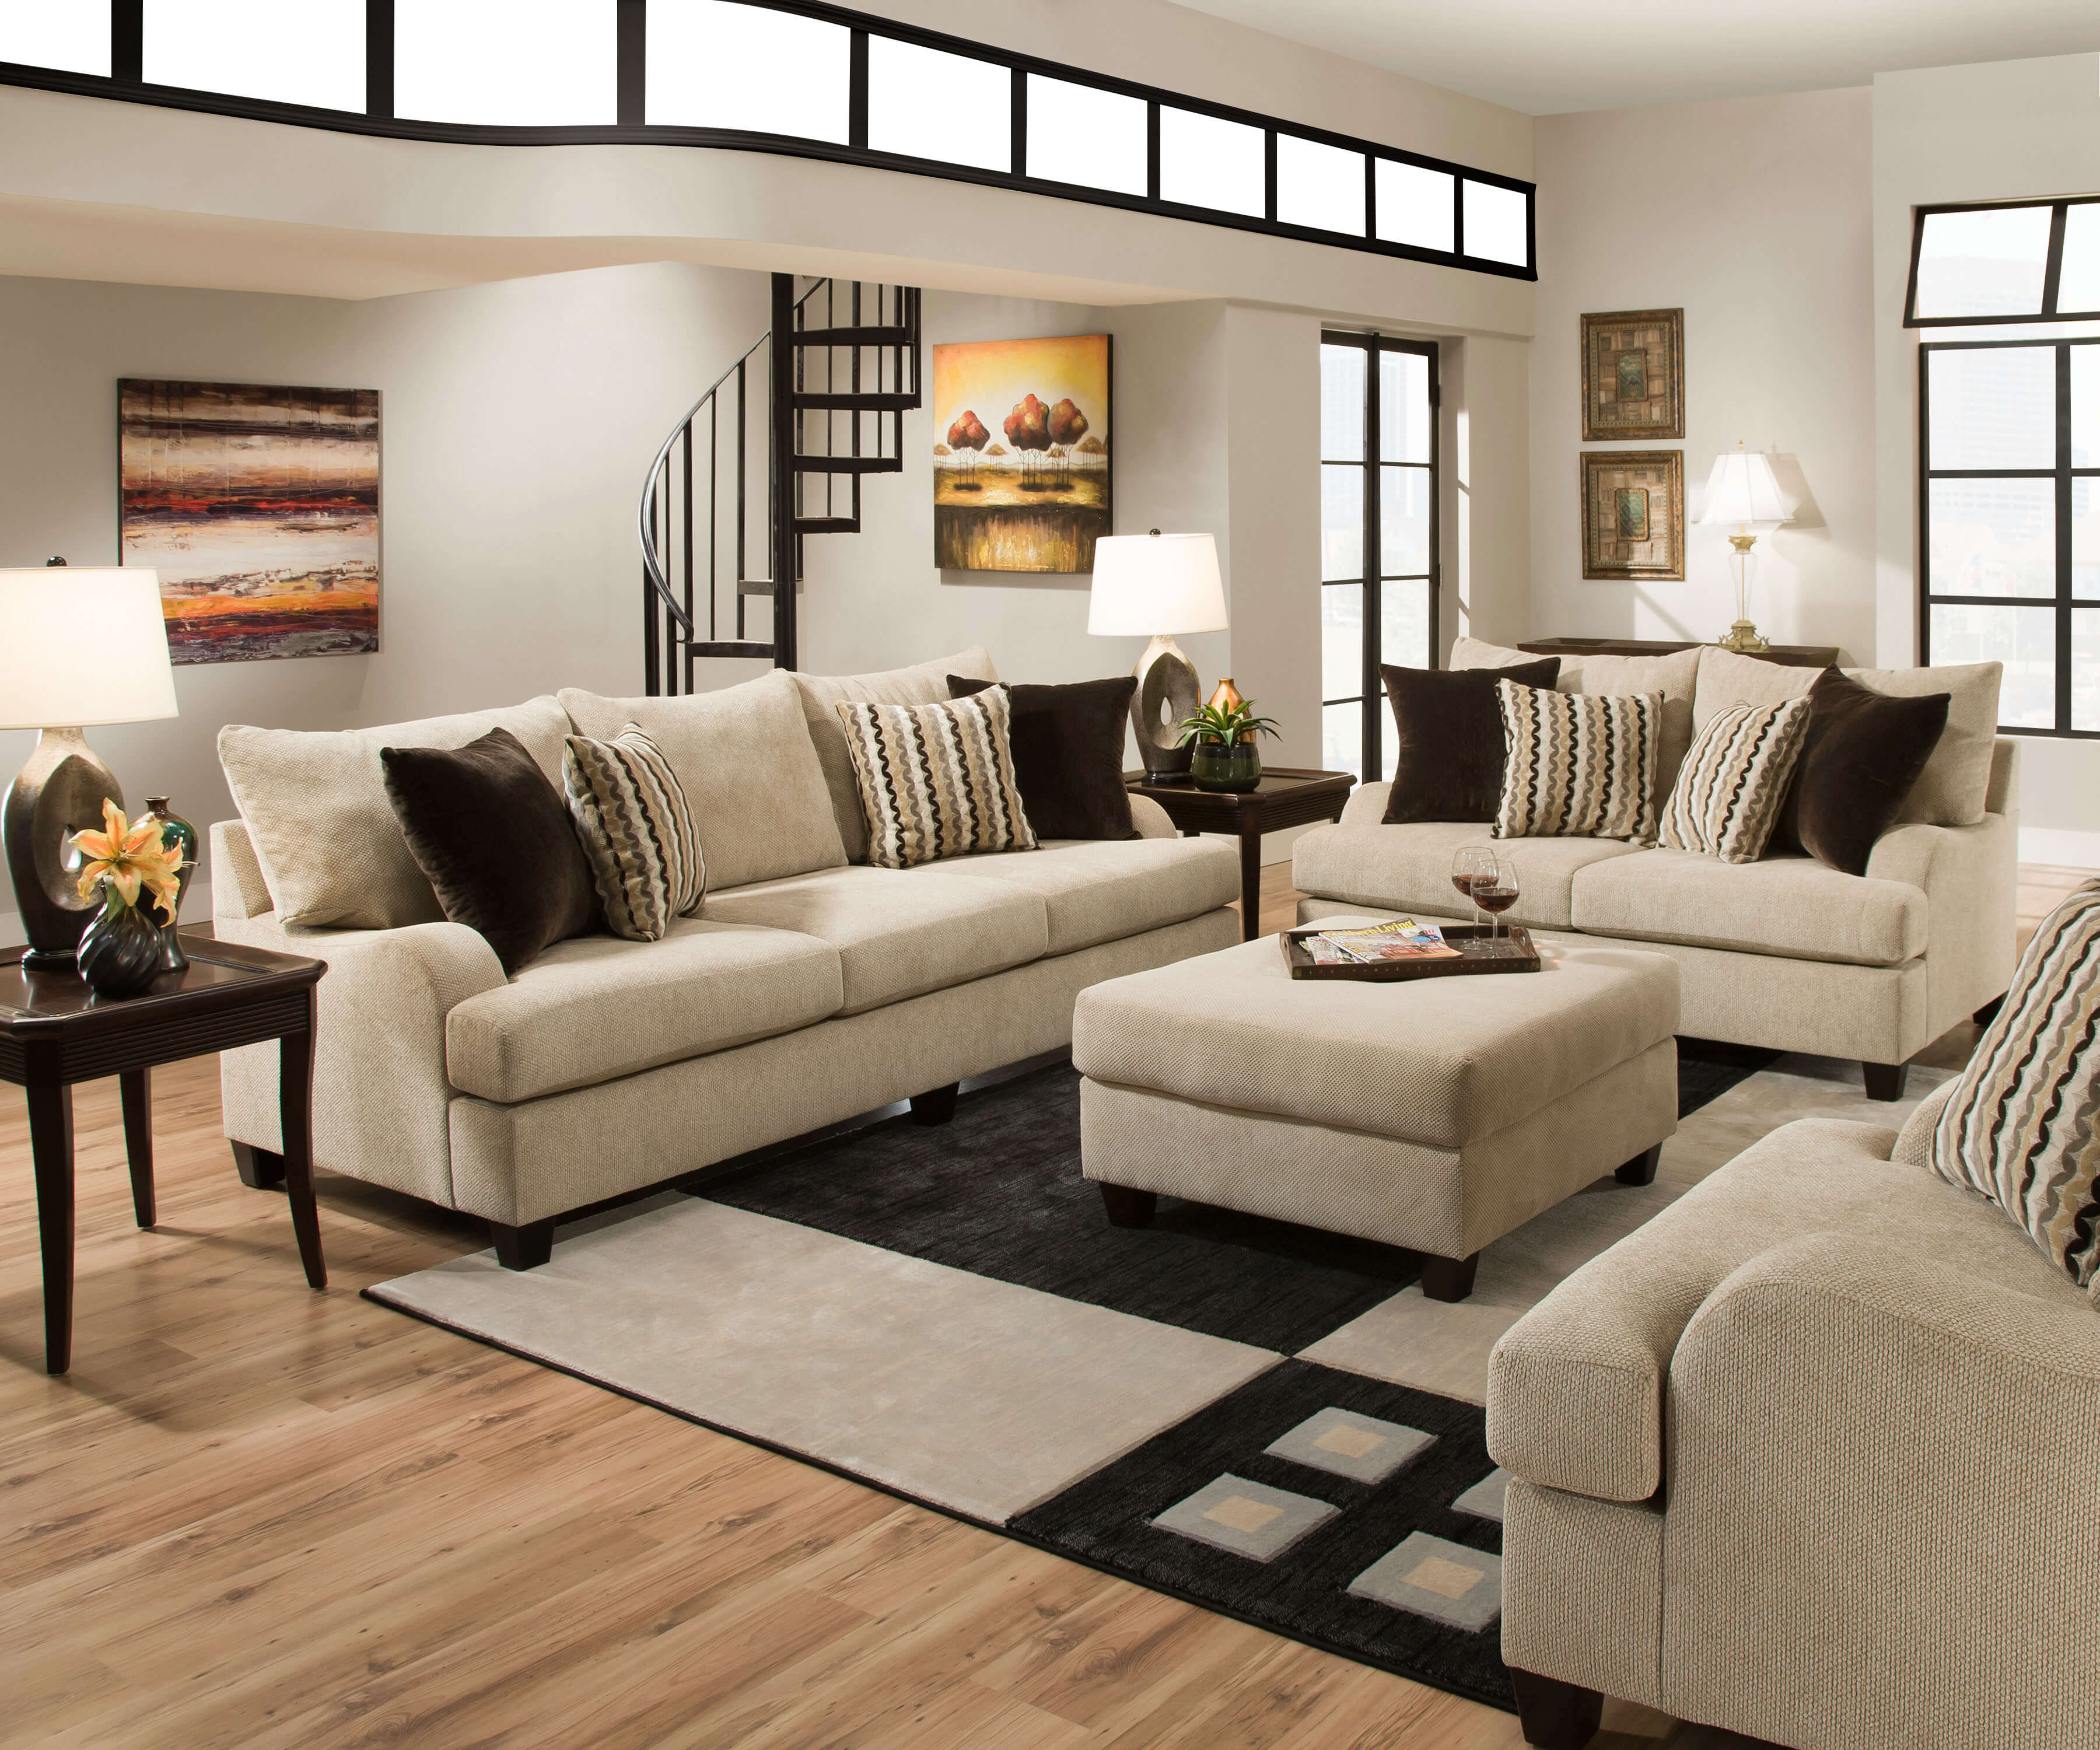 Simmons Trinidad Taupe Living Room Set Fabric Living Room Sets intended for 12 Clever Initiatives of How to Craft Nice Living Room Set